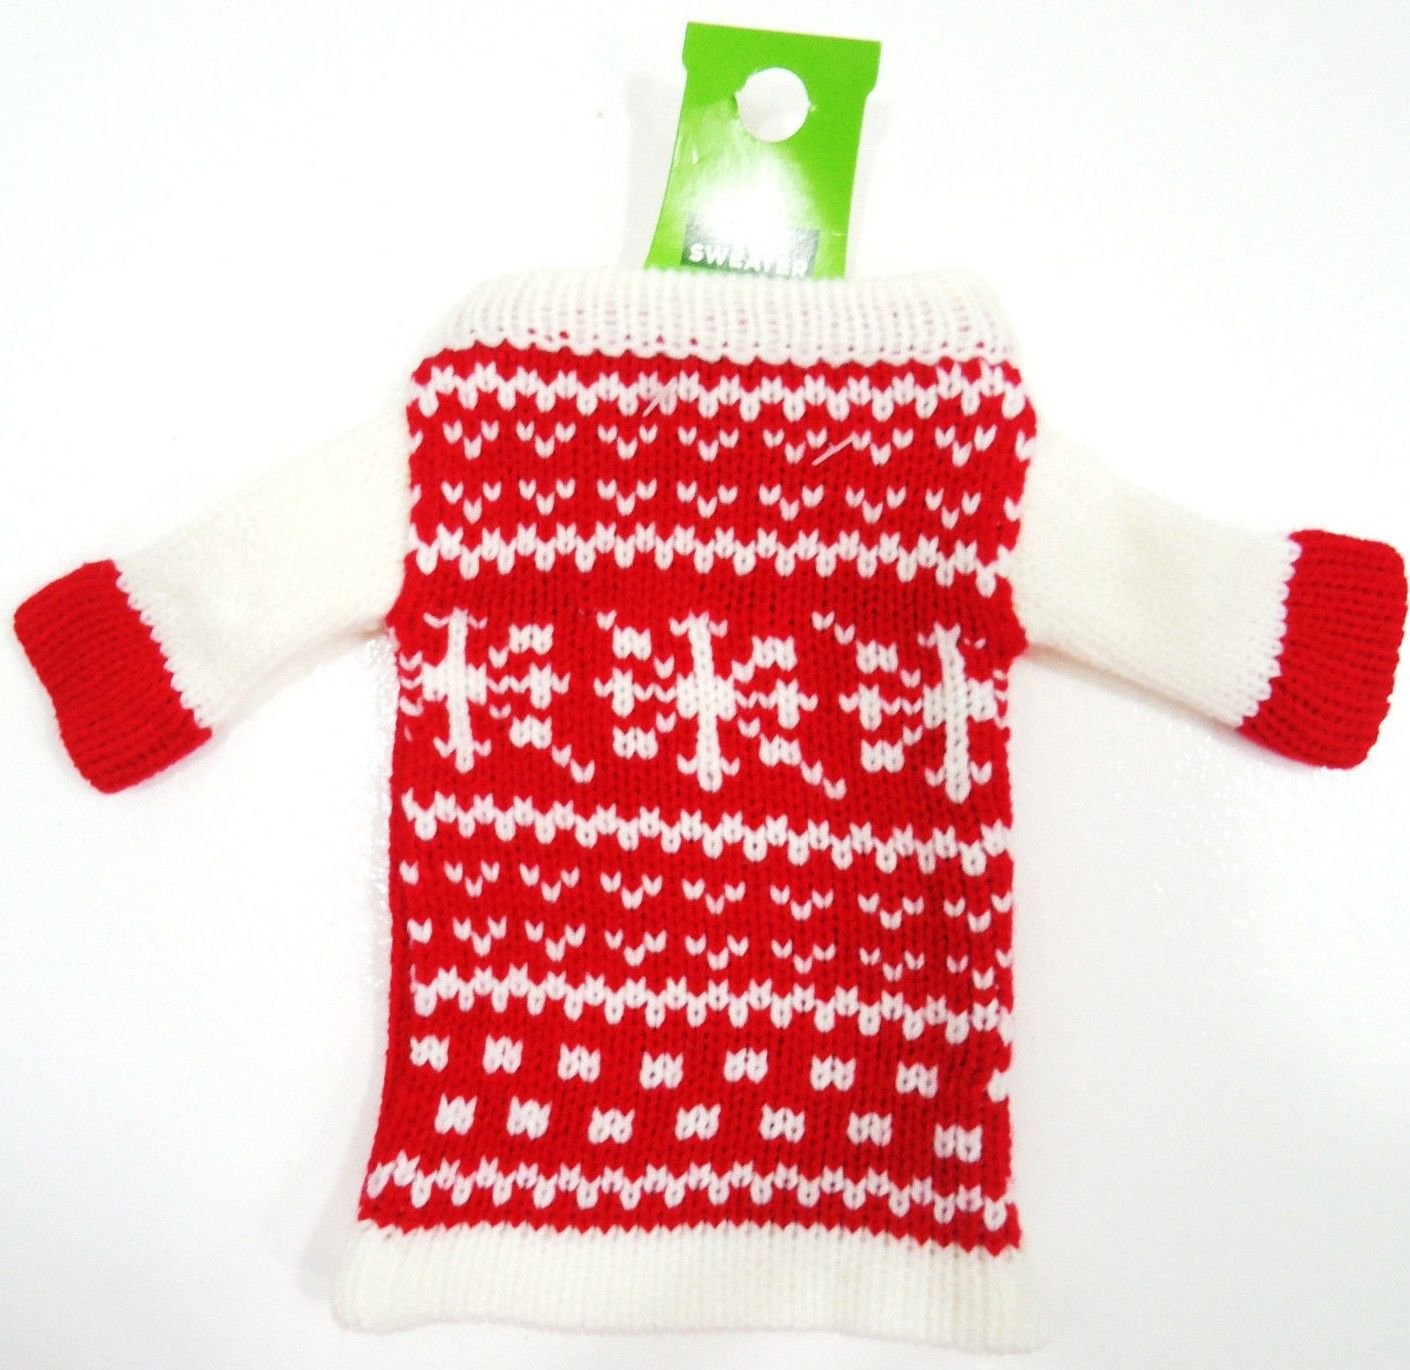 HOME ELEMENTS - WINE - BOTTLE - HOLIDAY - KNIT - RED - WHITE - SWEATER - NEW